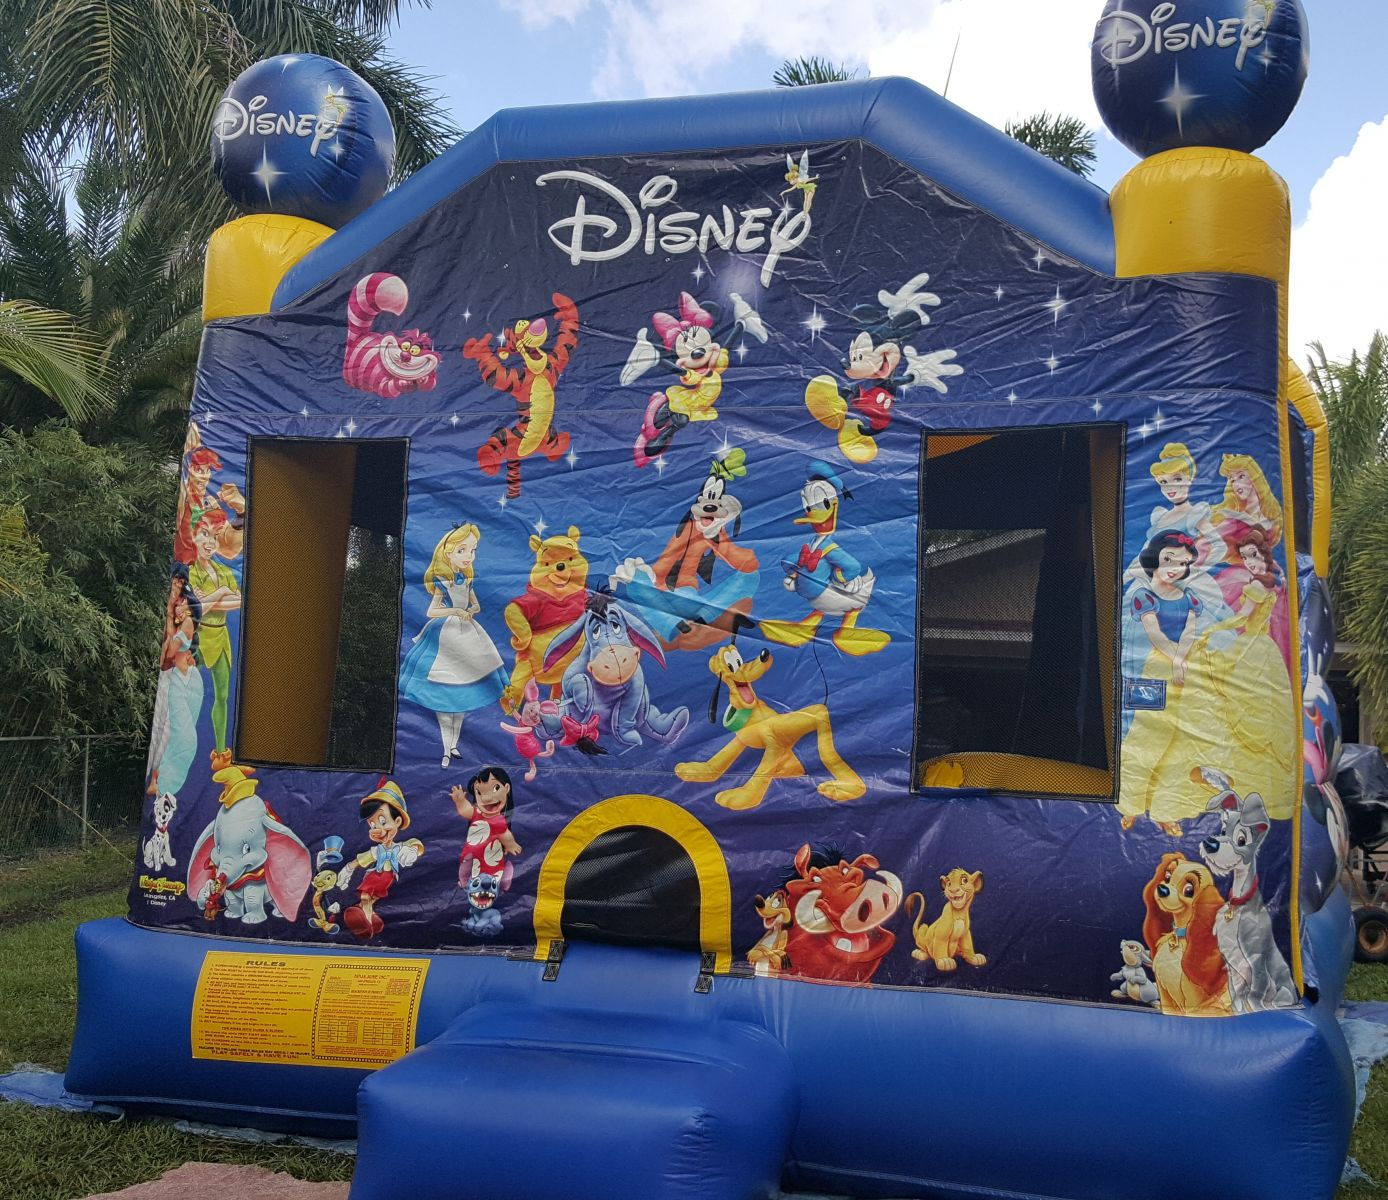 Disney character bounce house